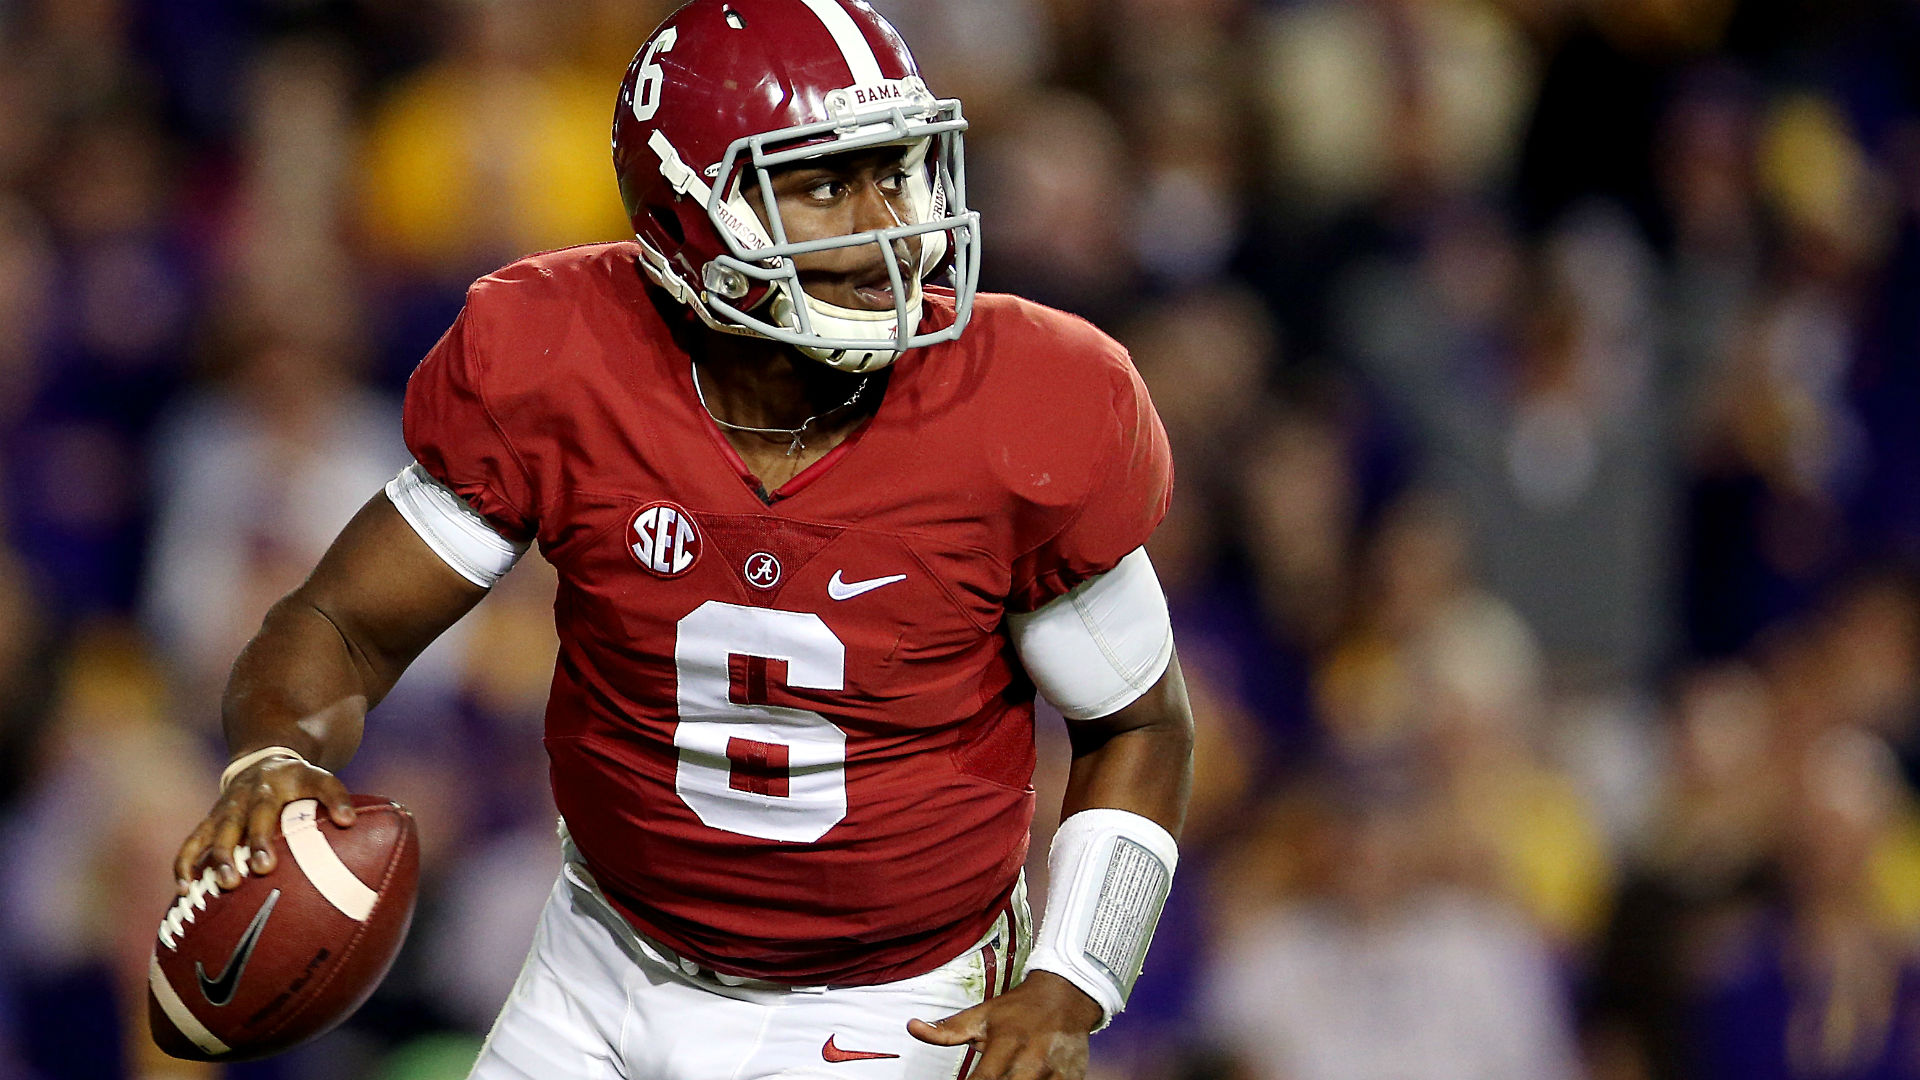 Auburn at Alabama betting preview and pick – Beating spread helps Crimson Tide's case for top spot